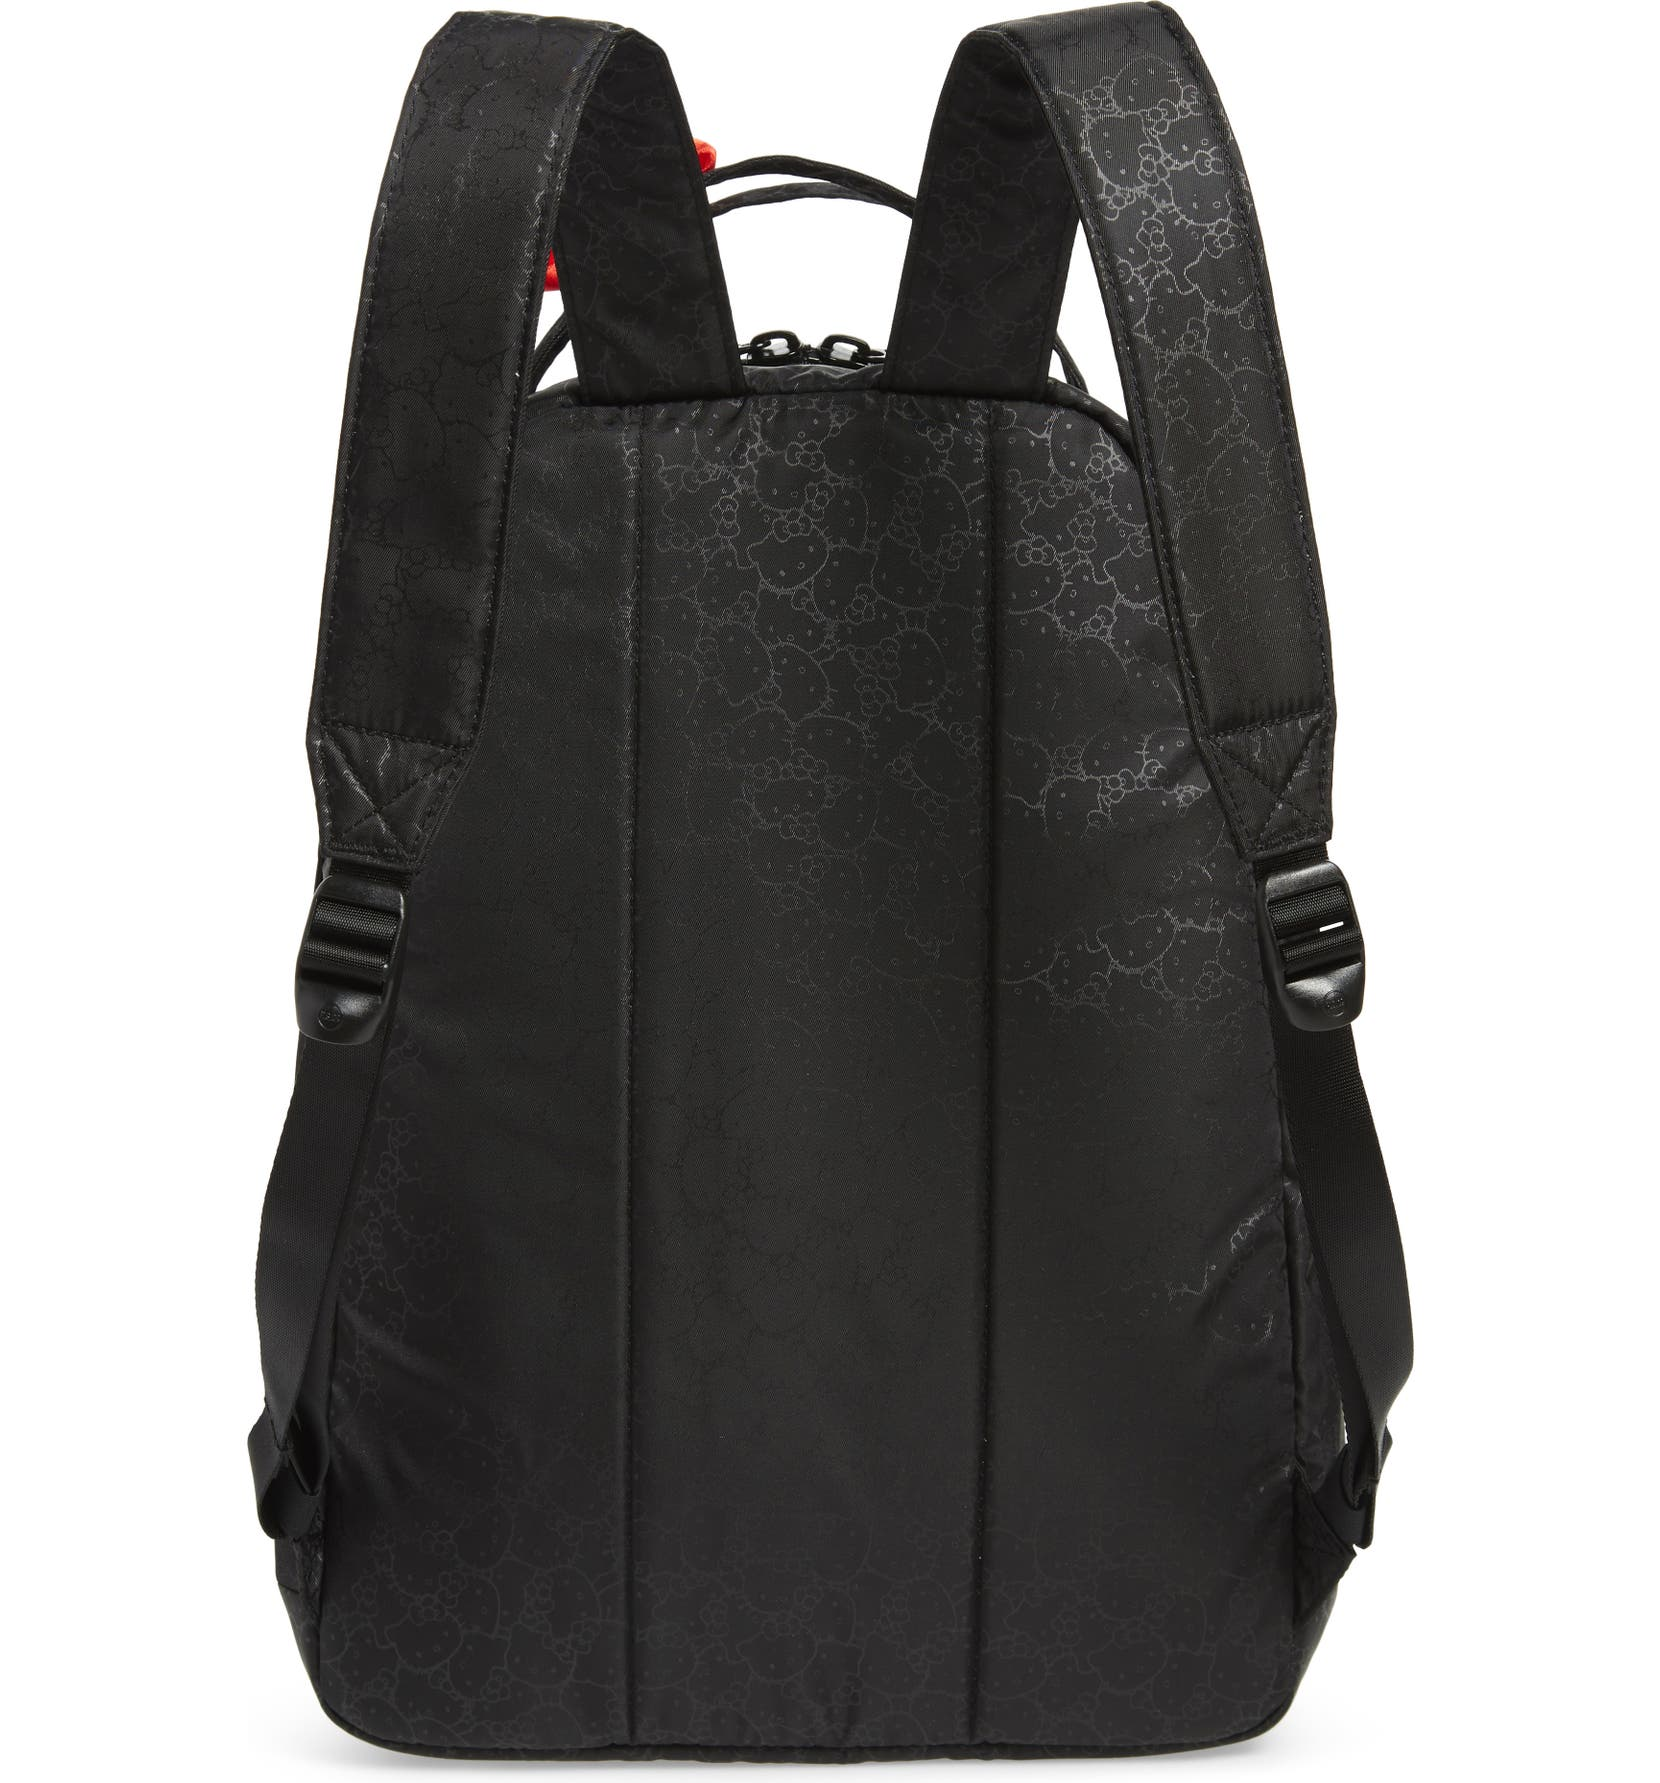 8d9524758 Herschel Supply Co. x Hello Kitty Nova Mid Volume Backpack | Nordstrom